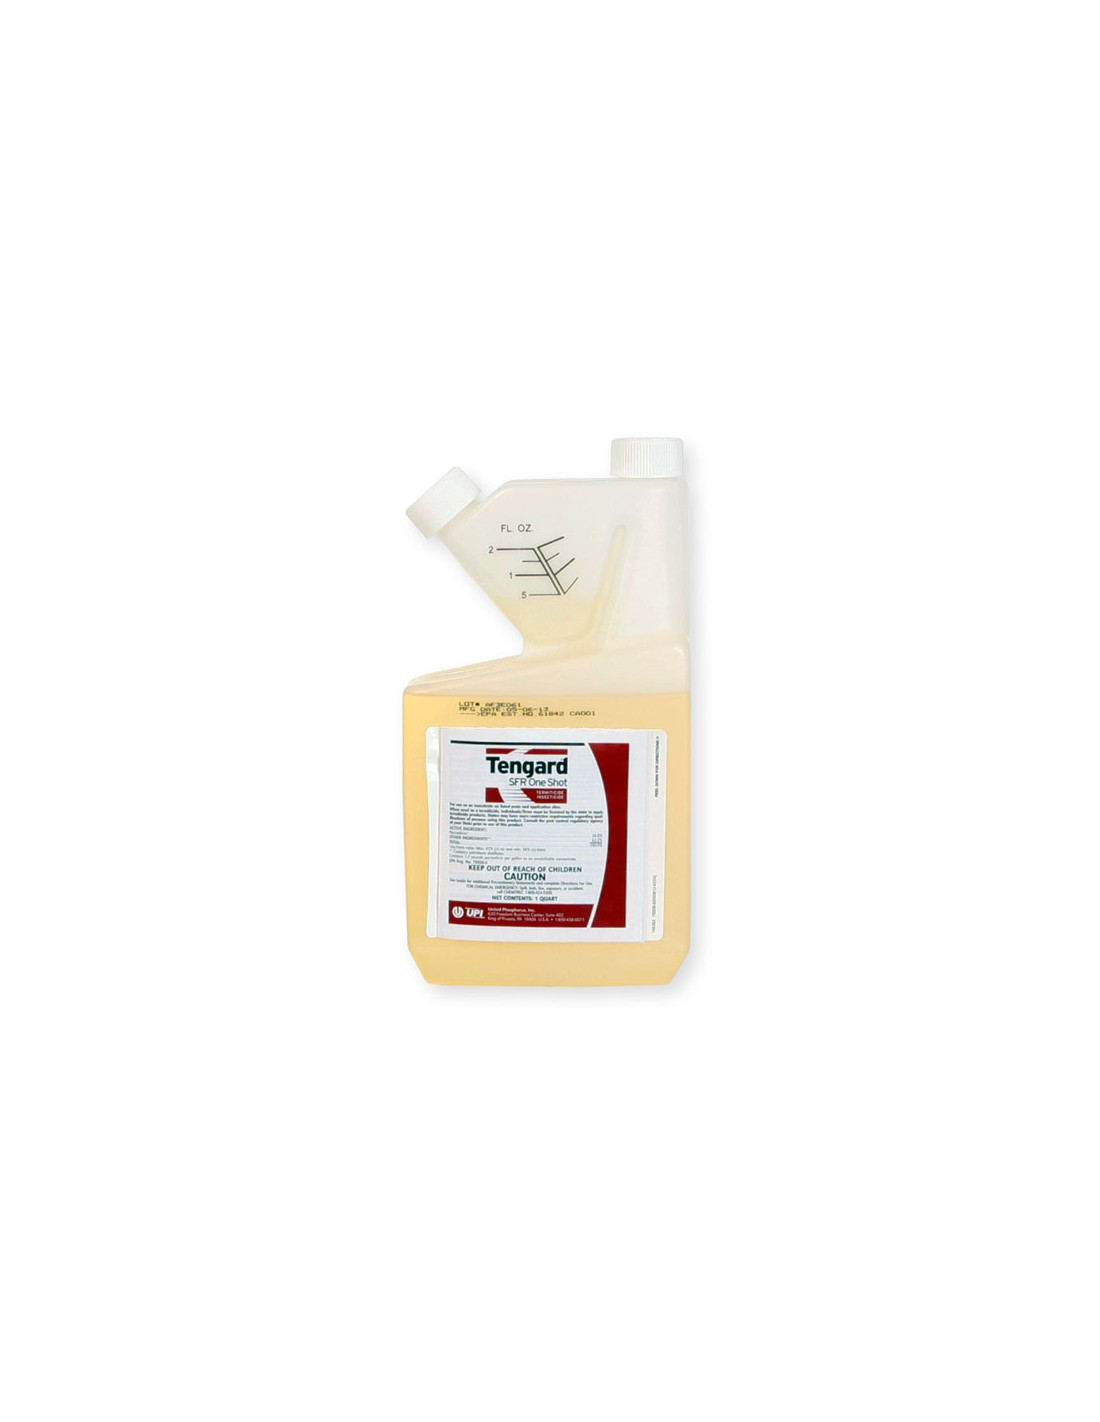 Tengard SFR One Shot Termiticide Insecticide Questions & Answers